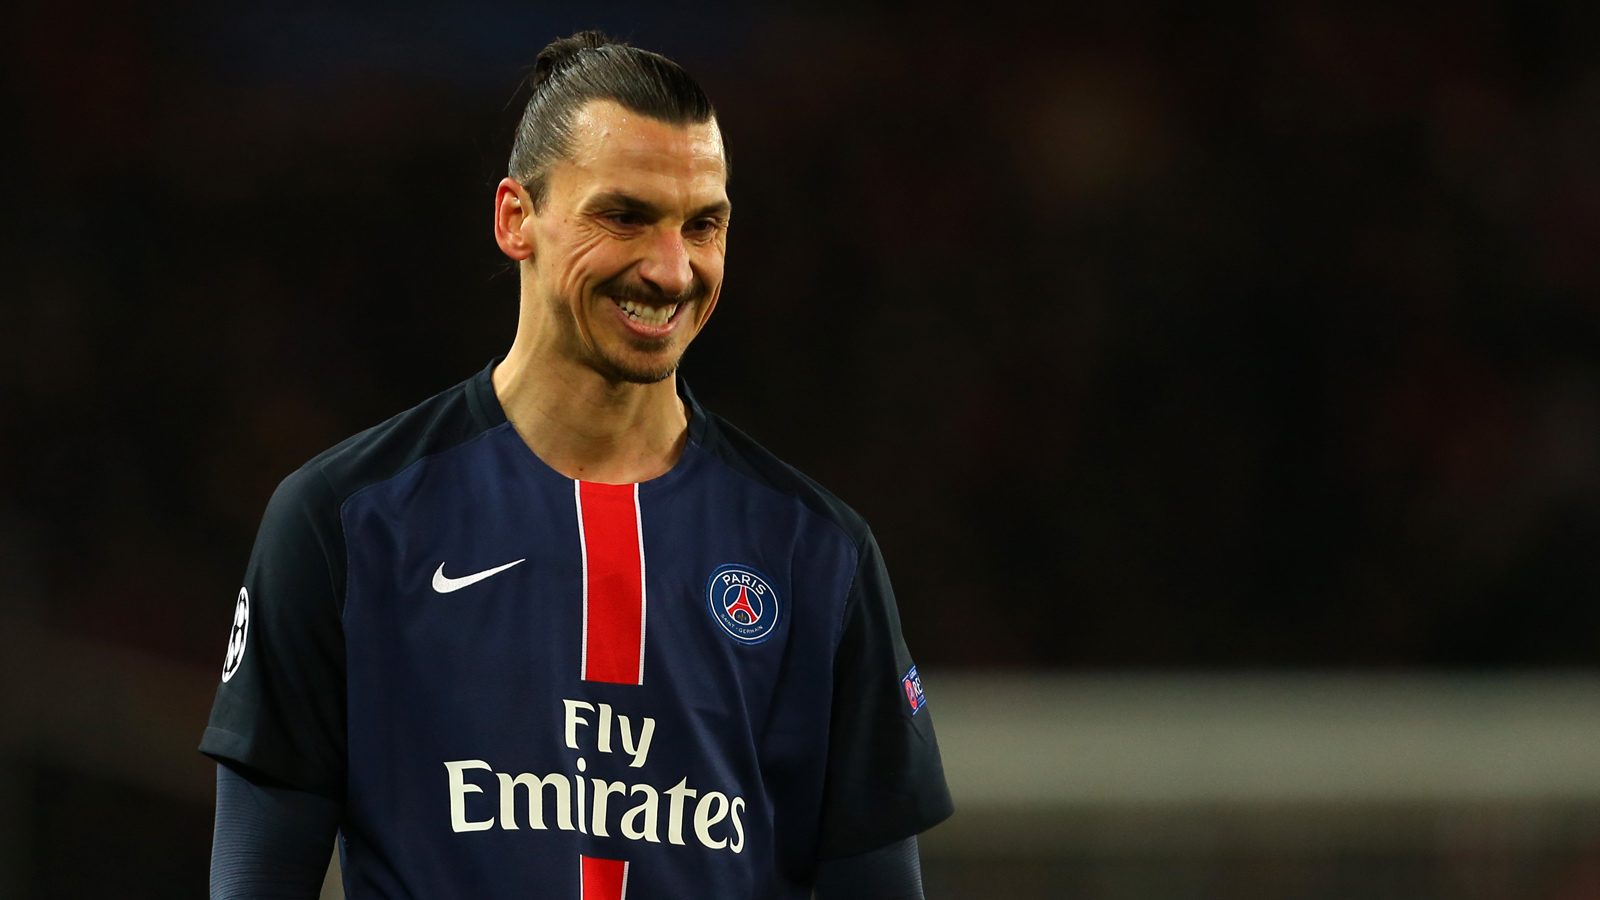 All eyes on Zlatan as he chases elusive Champions League glory